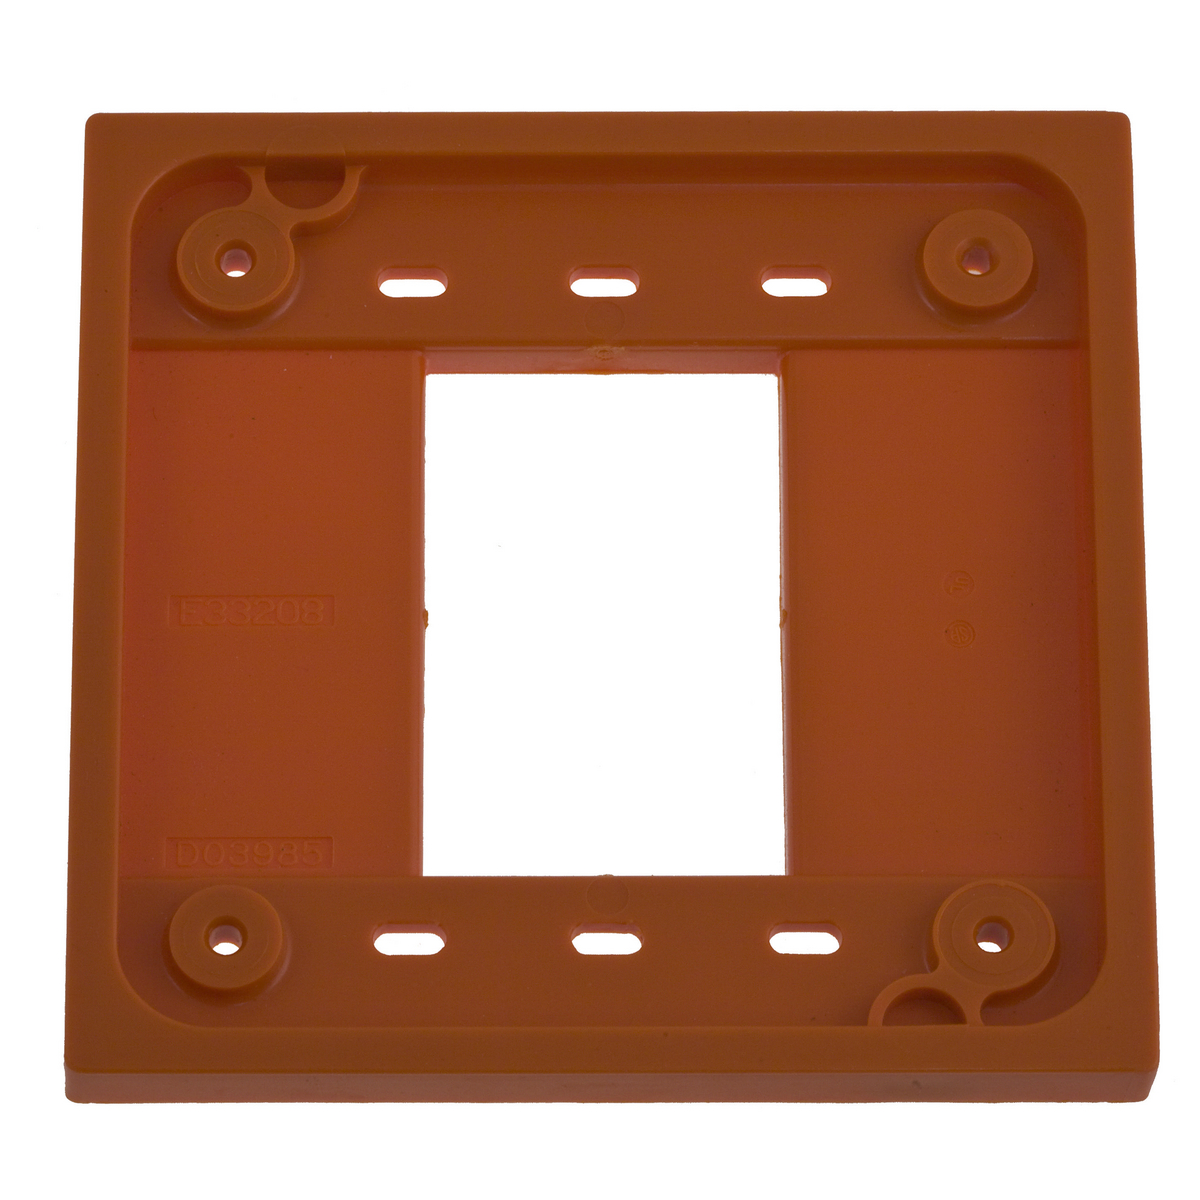 Hubbell HBL4APO Orange Straight Blade Device 4-Plex Adapter Plate